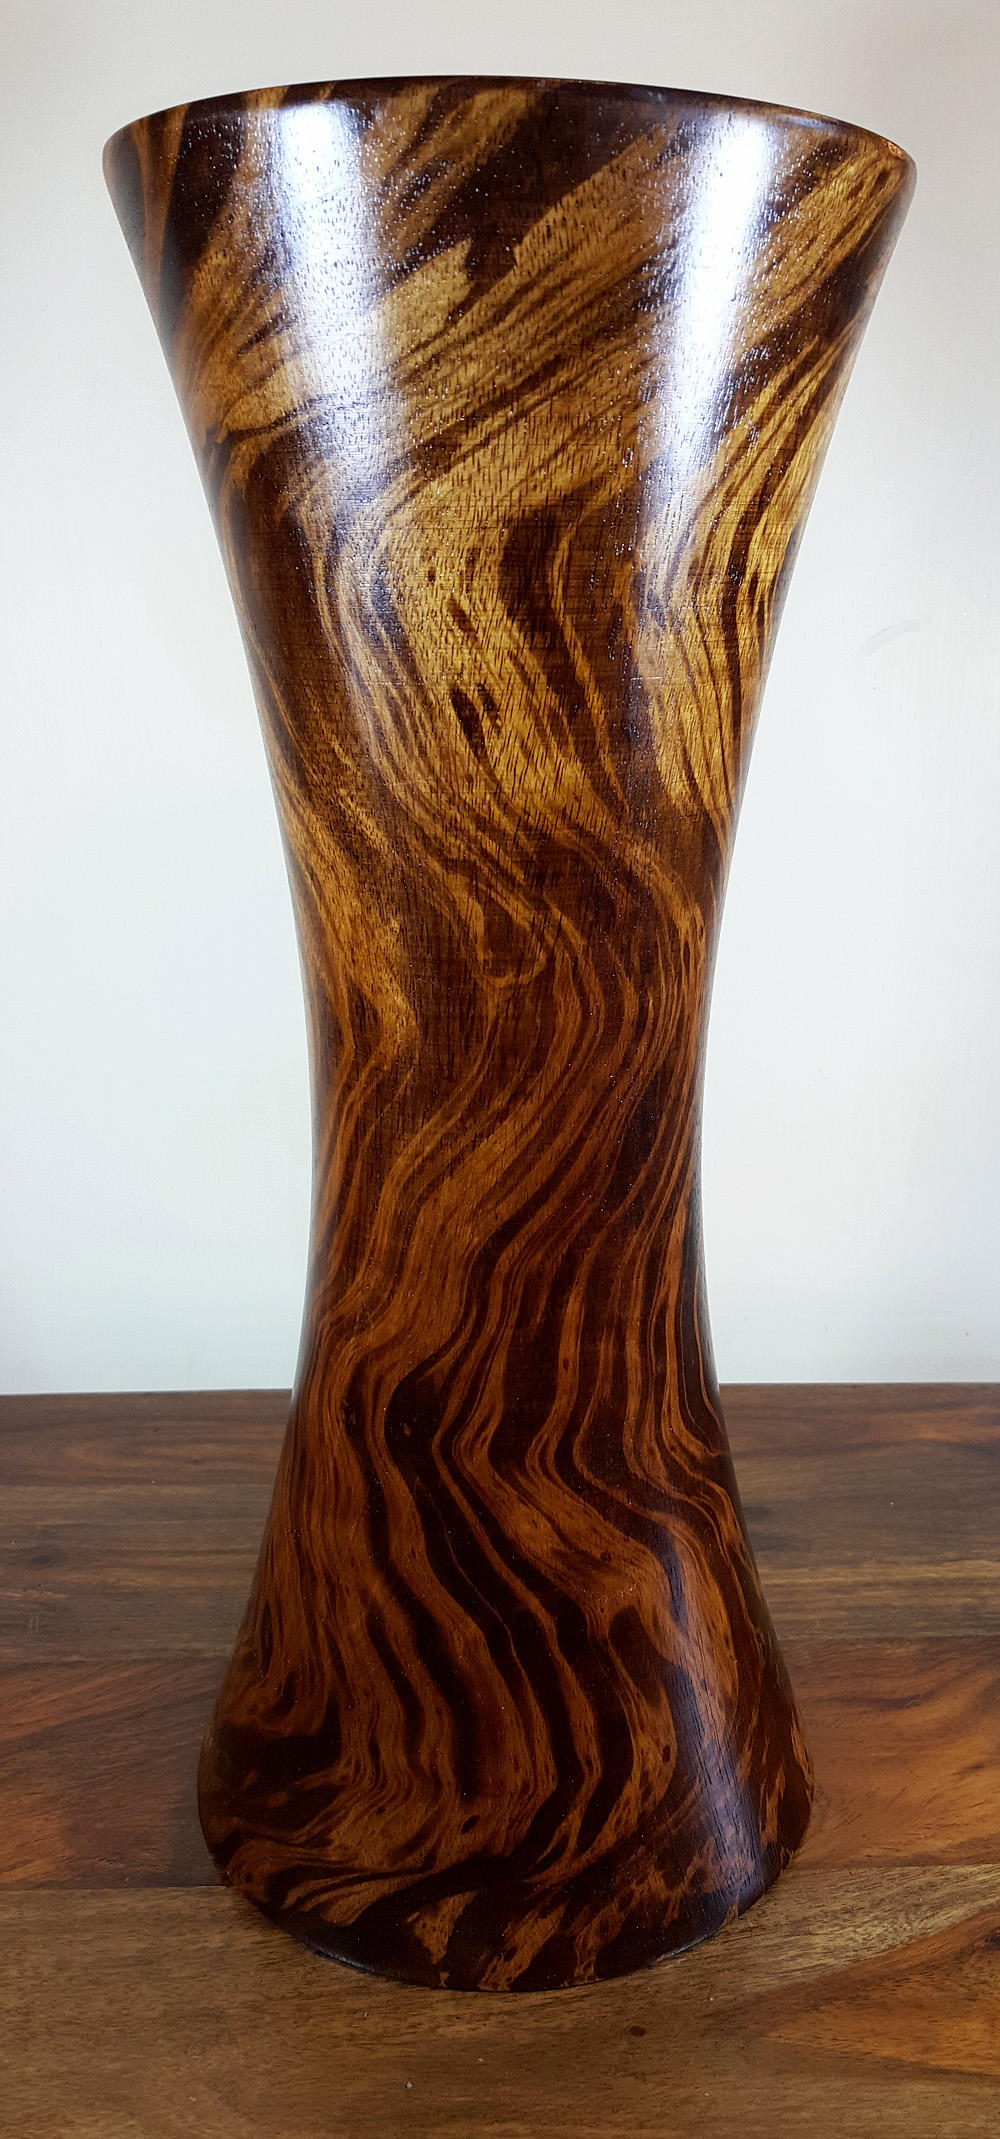 Mango wood hour glass vase large home decor decorative vases for Home decor vases